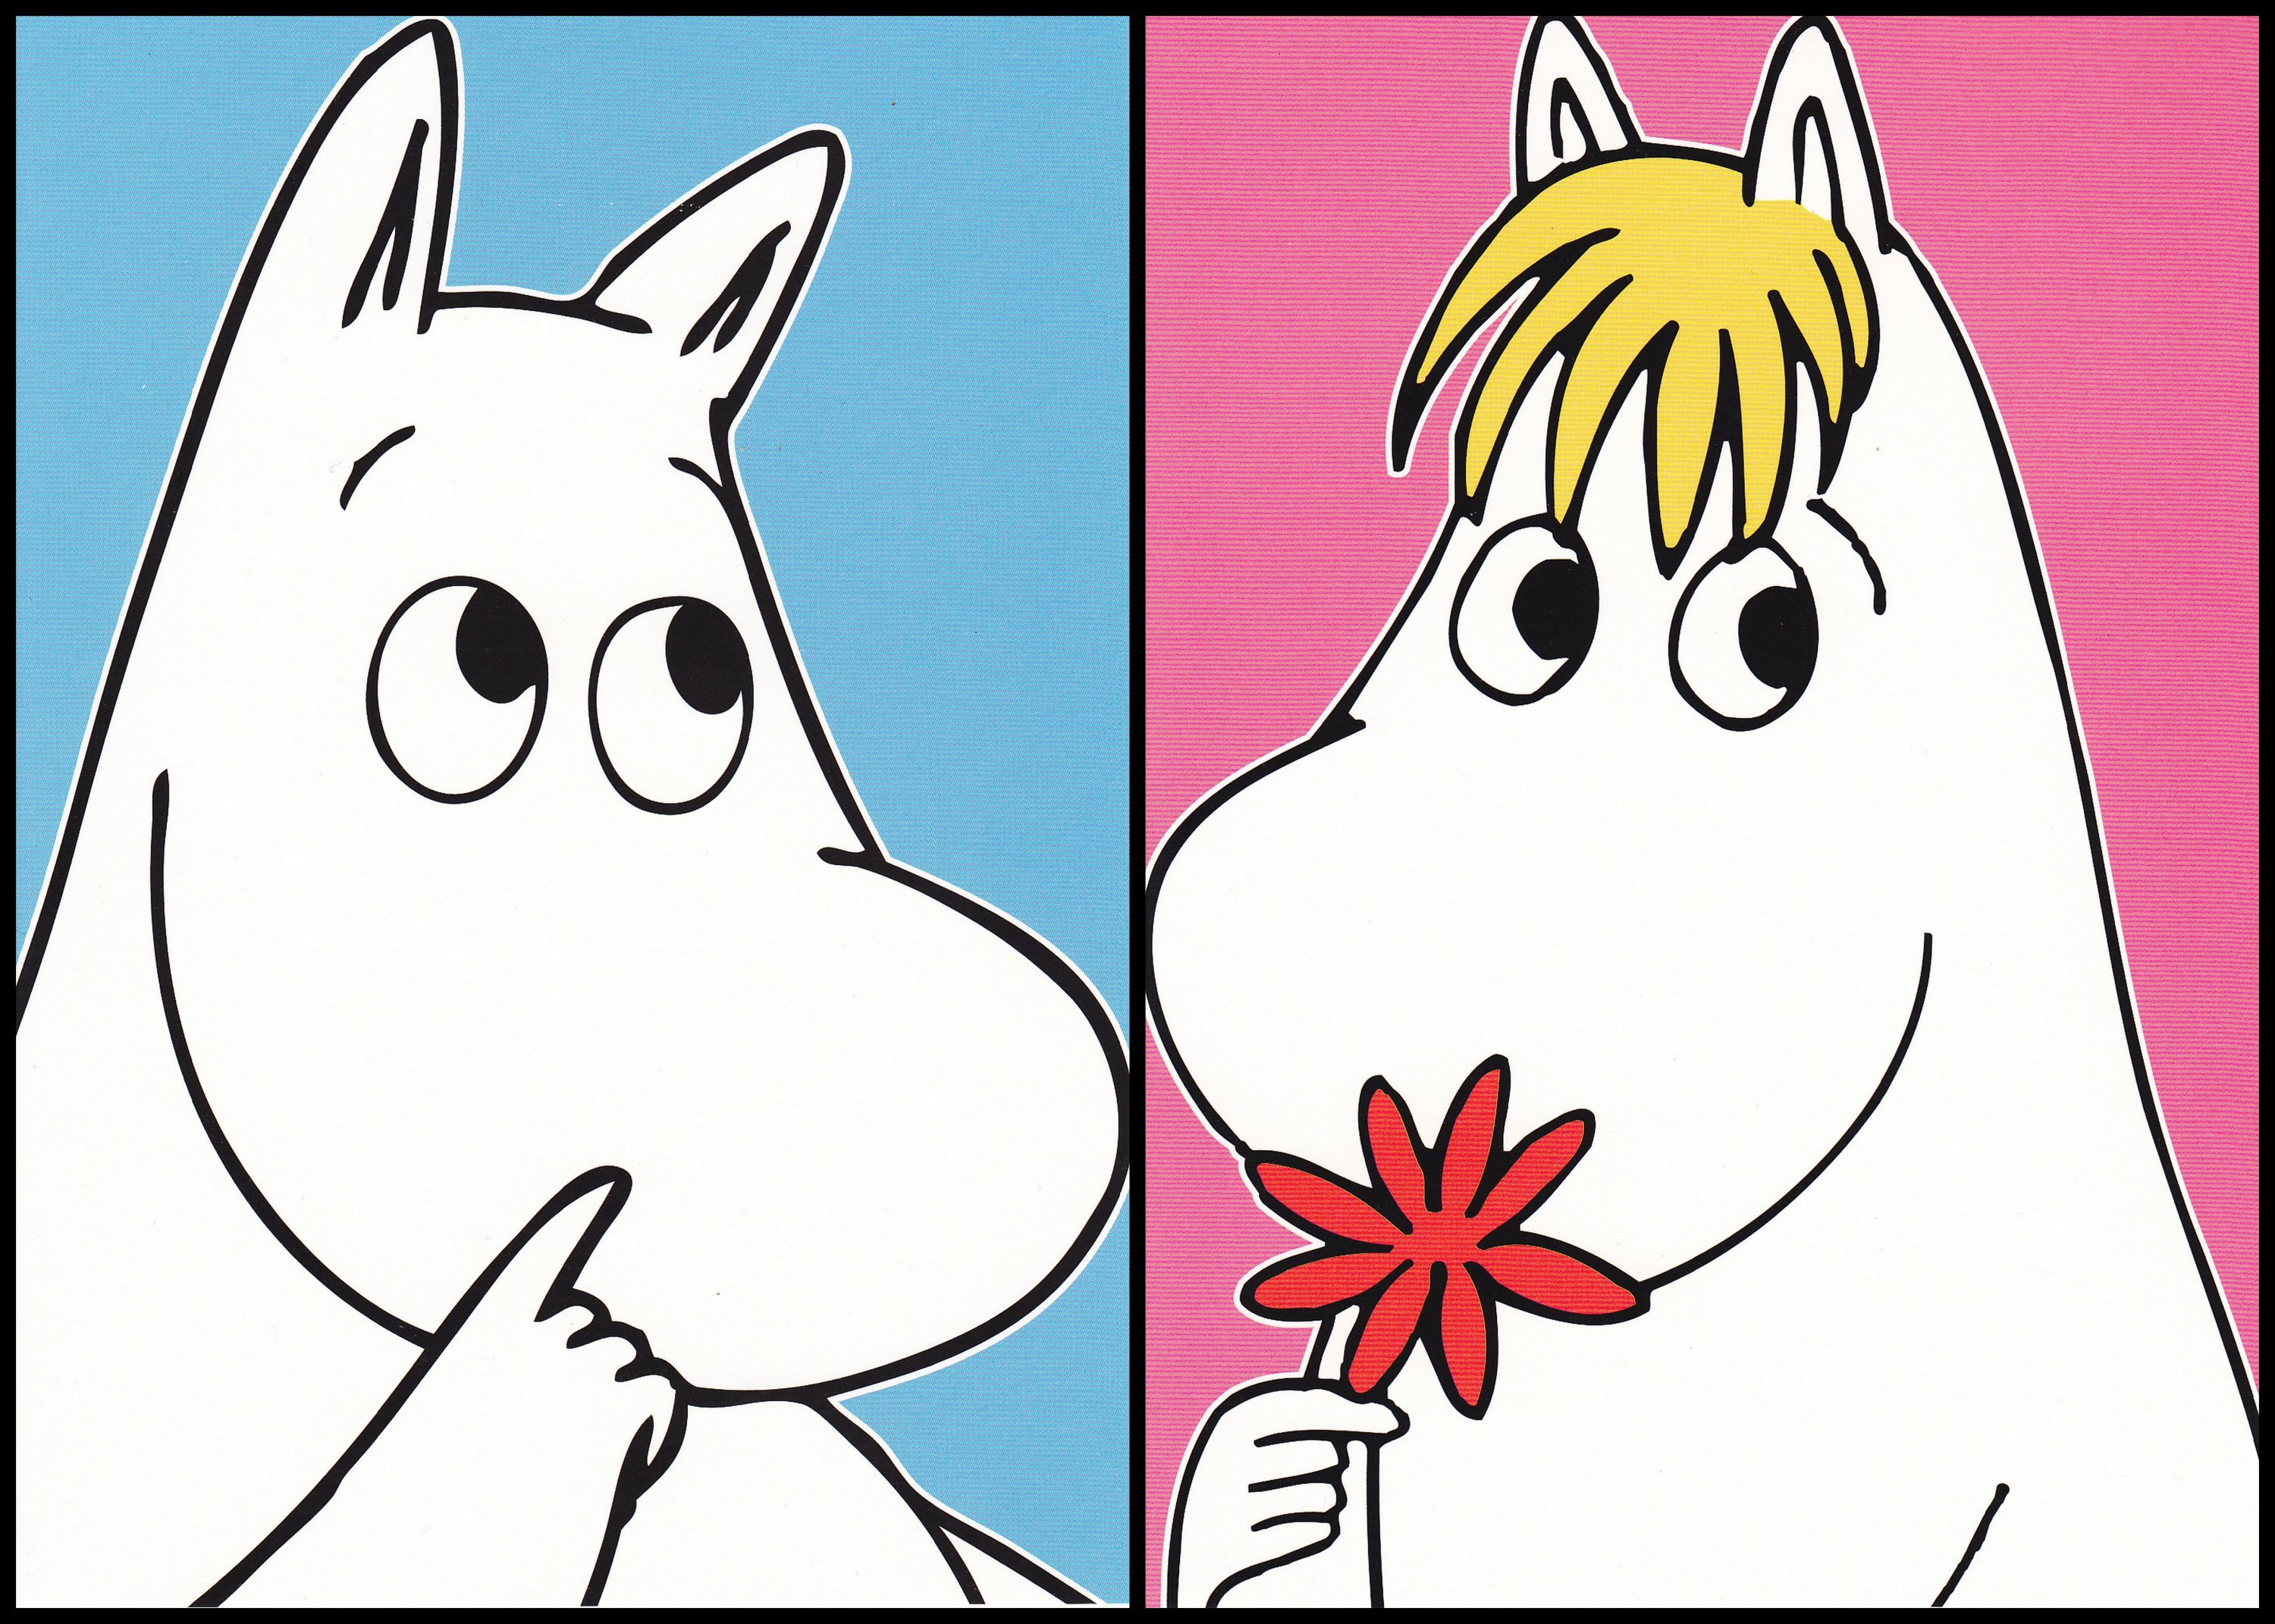 Wallpaper For Iphone X Live Moomin And Snorkmaiden Cards Picture Moomin And